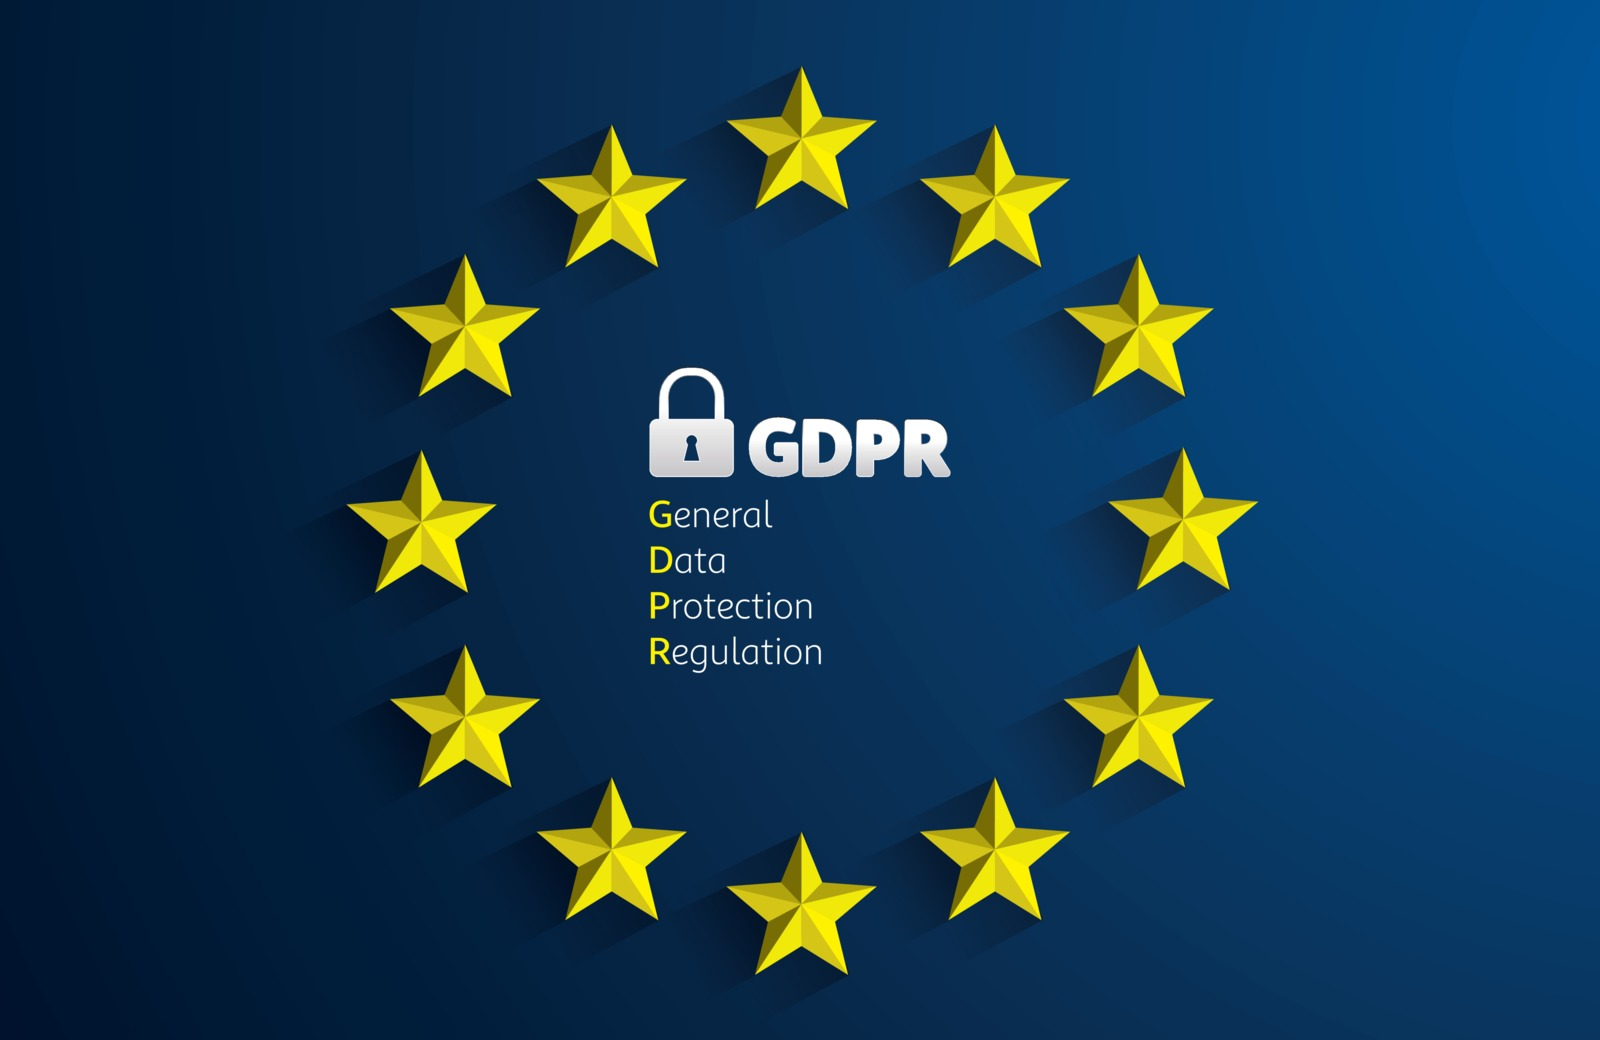 Group of stars around the text GDPR